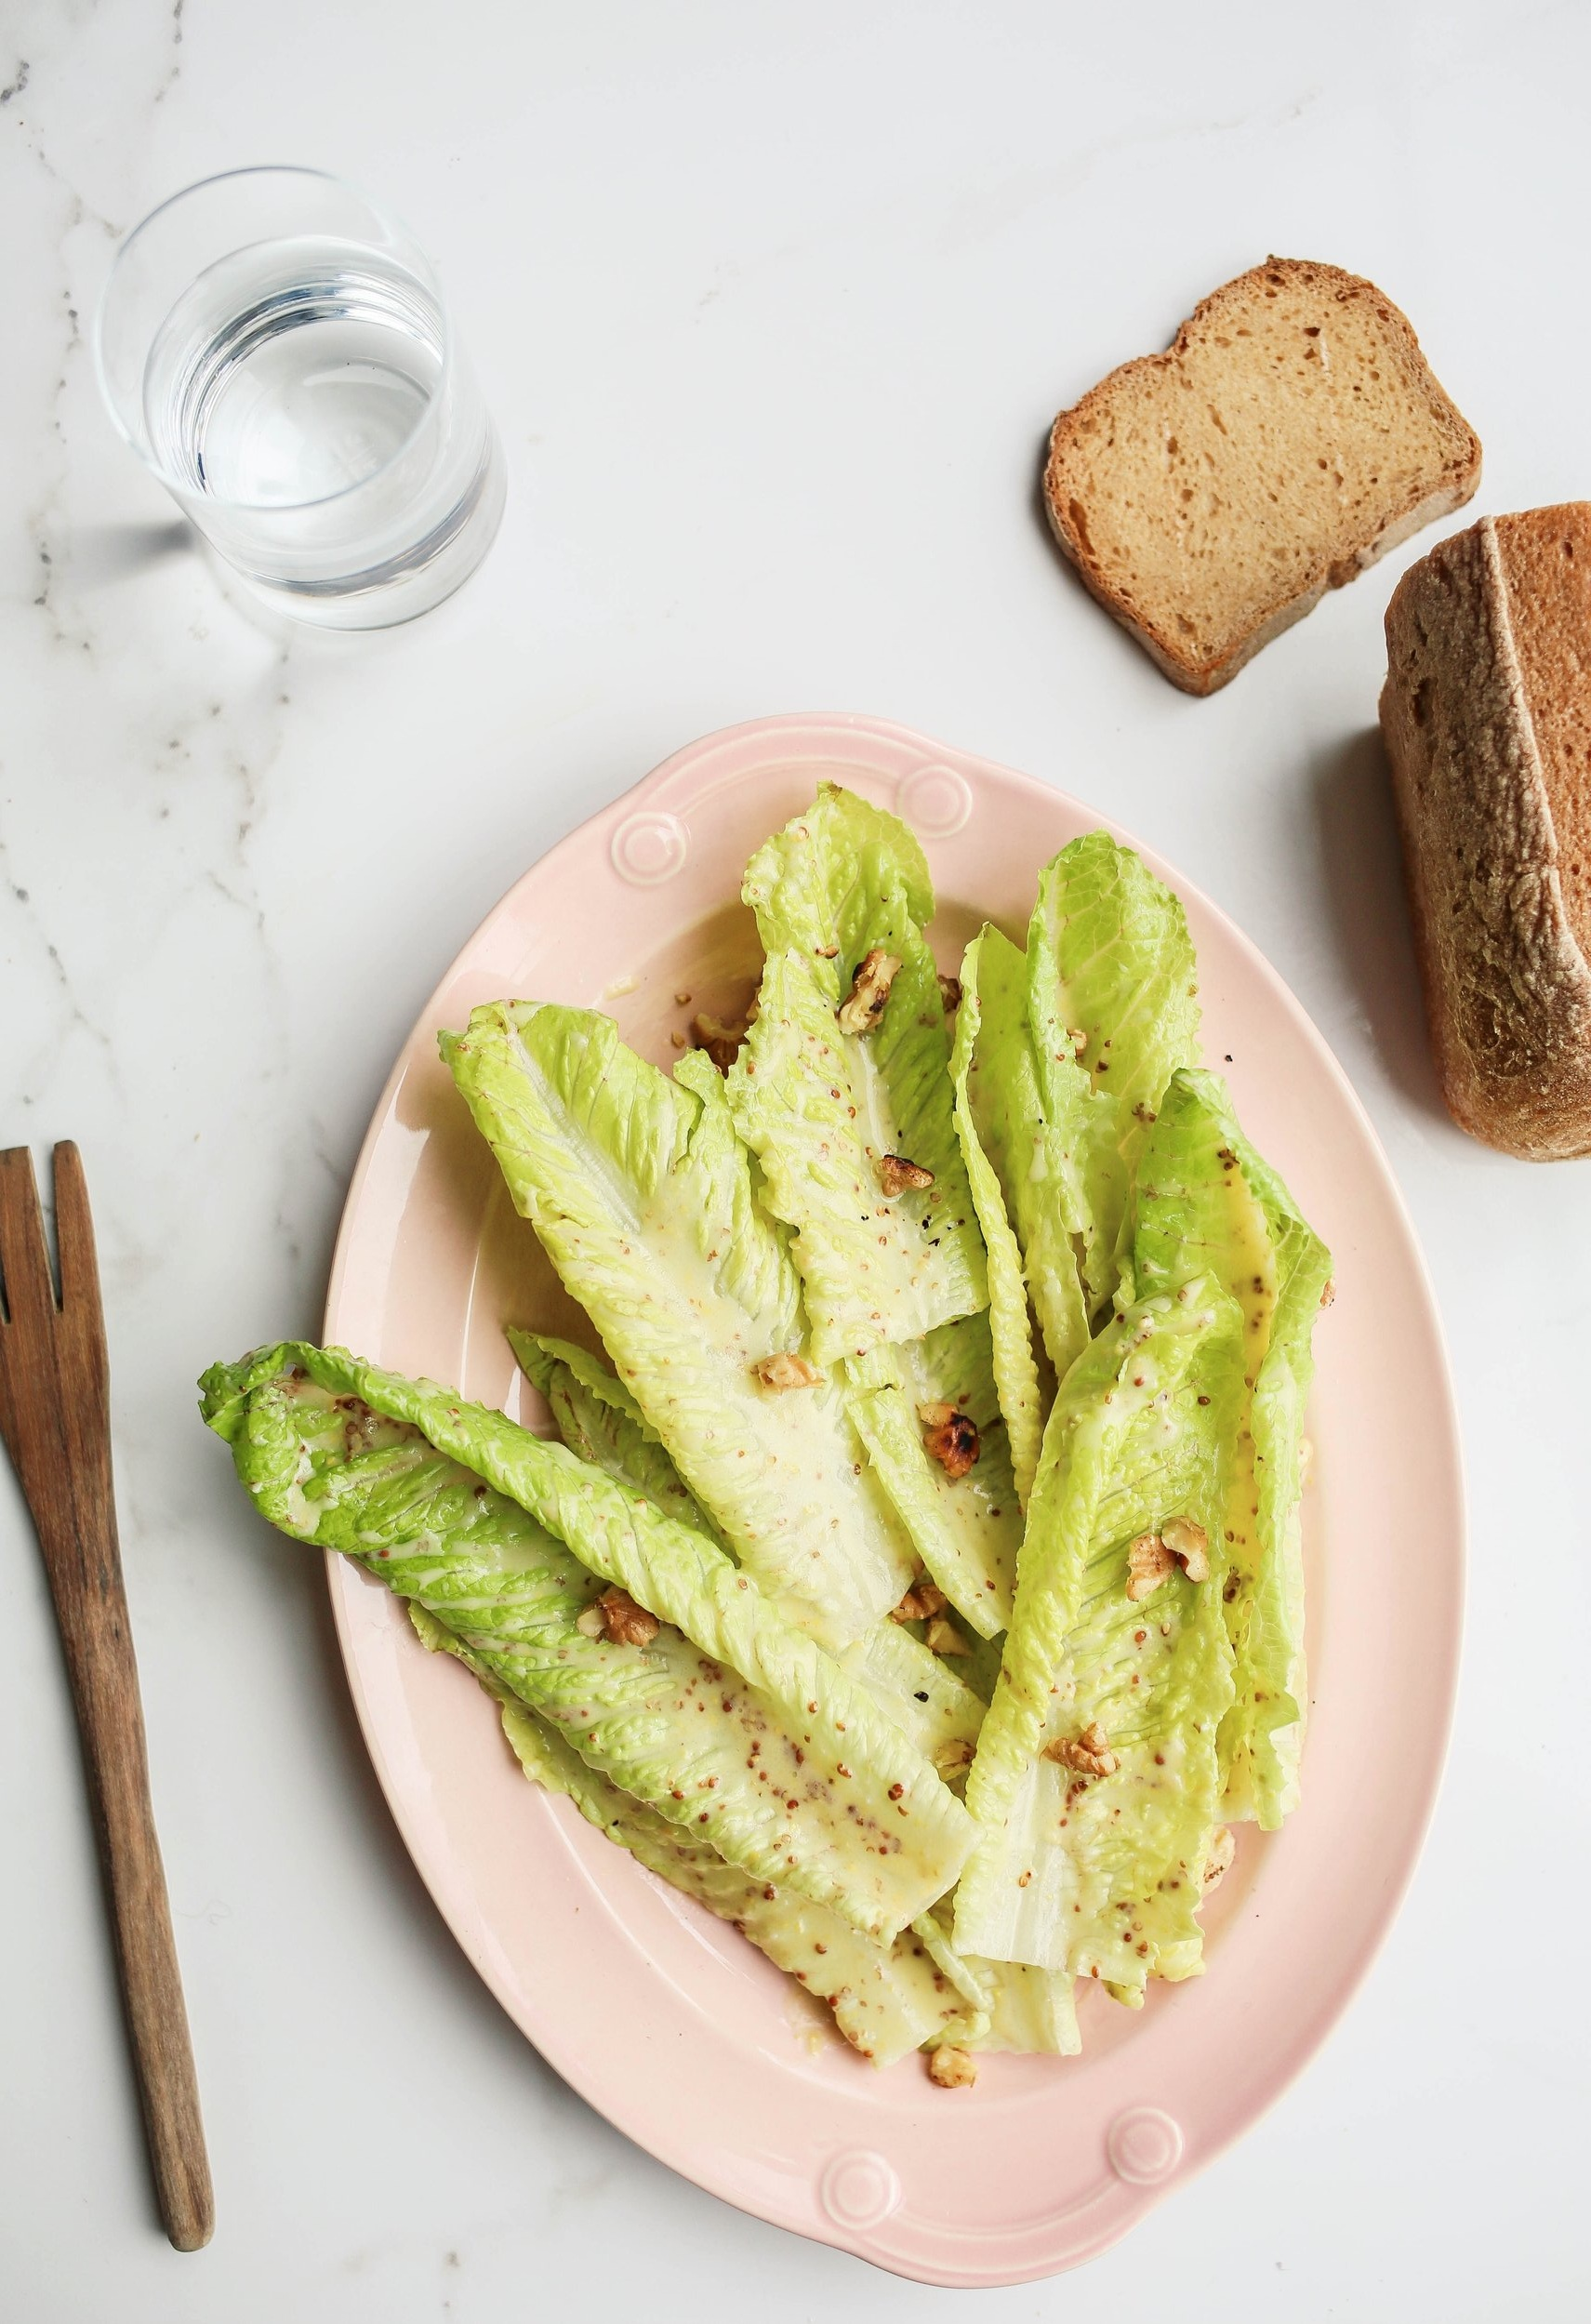 Beauty BBQ // Summer Romaine with Miso Dijon Dressing and Toasted Walnuts